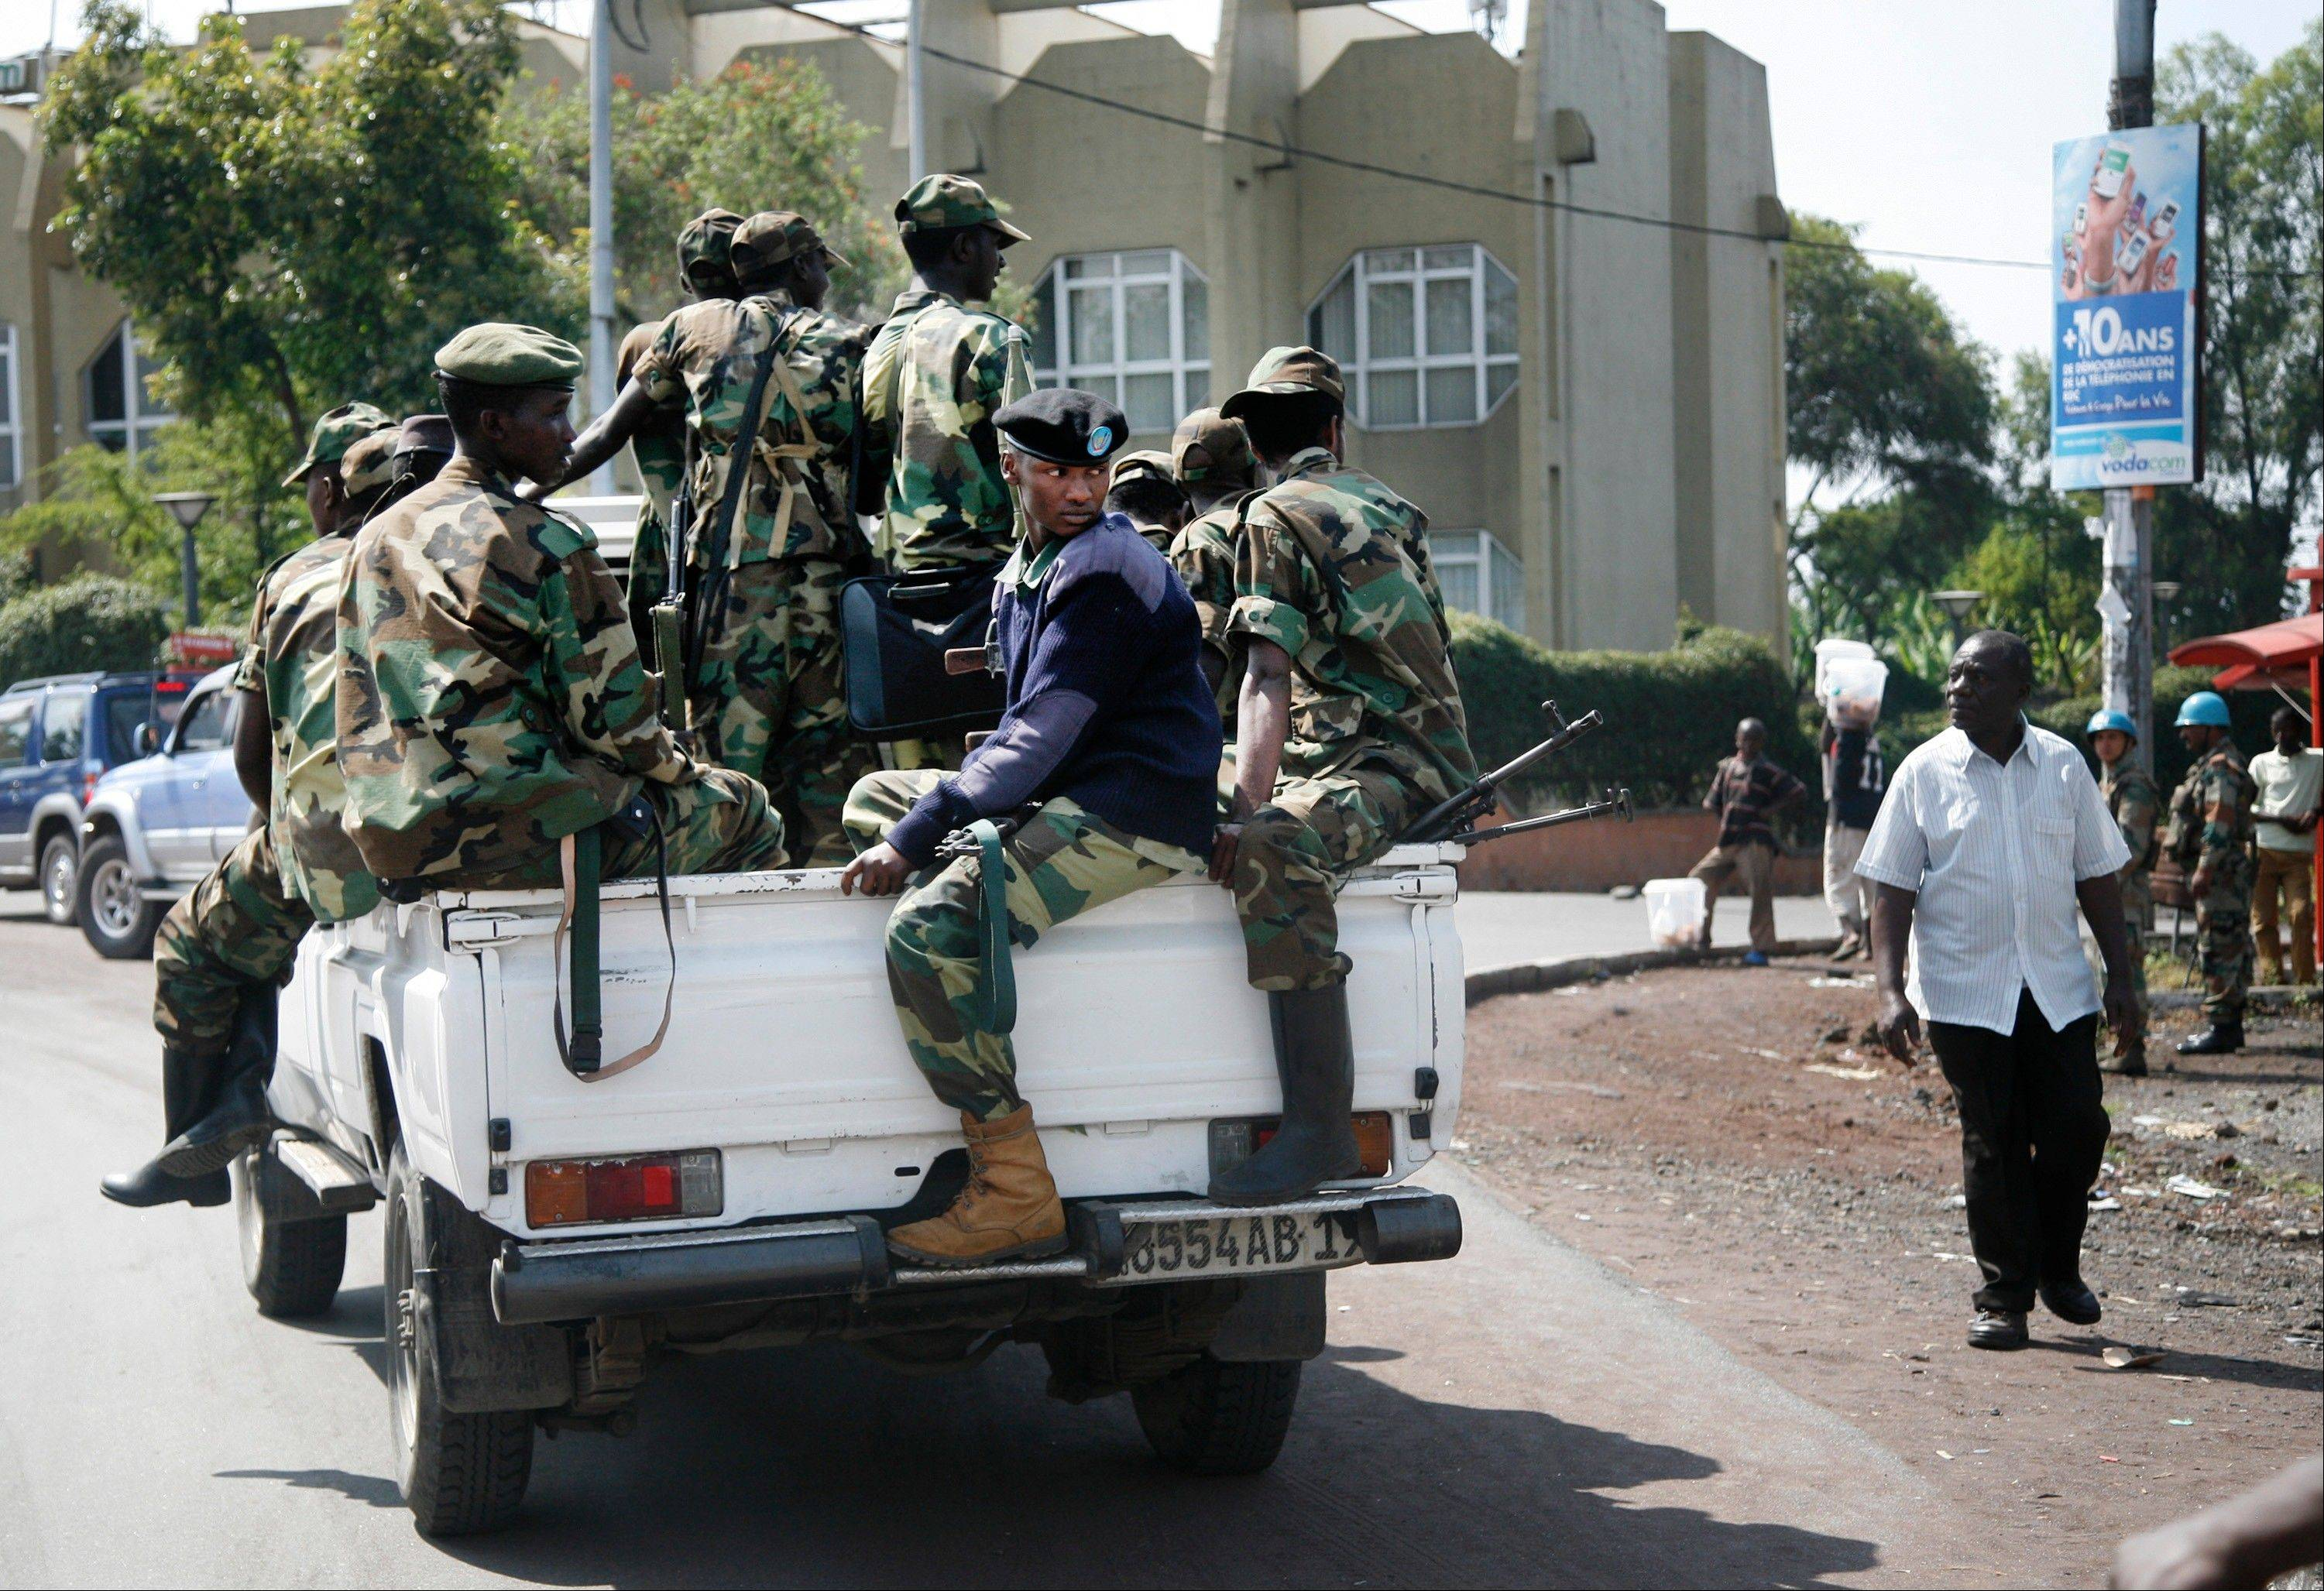 Congo�s M23 rebels defied a deadline imposed by neighboring nations, saying Tuesday the insurgents will stay in the crucial, eastern city of Goma and will fight the Congolese army if it tries to retake it.